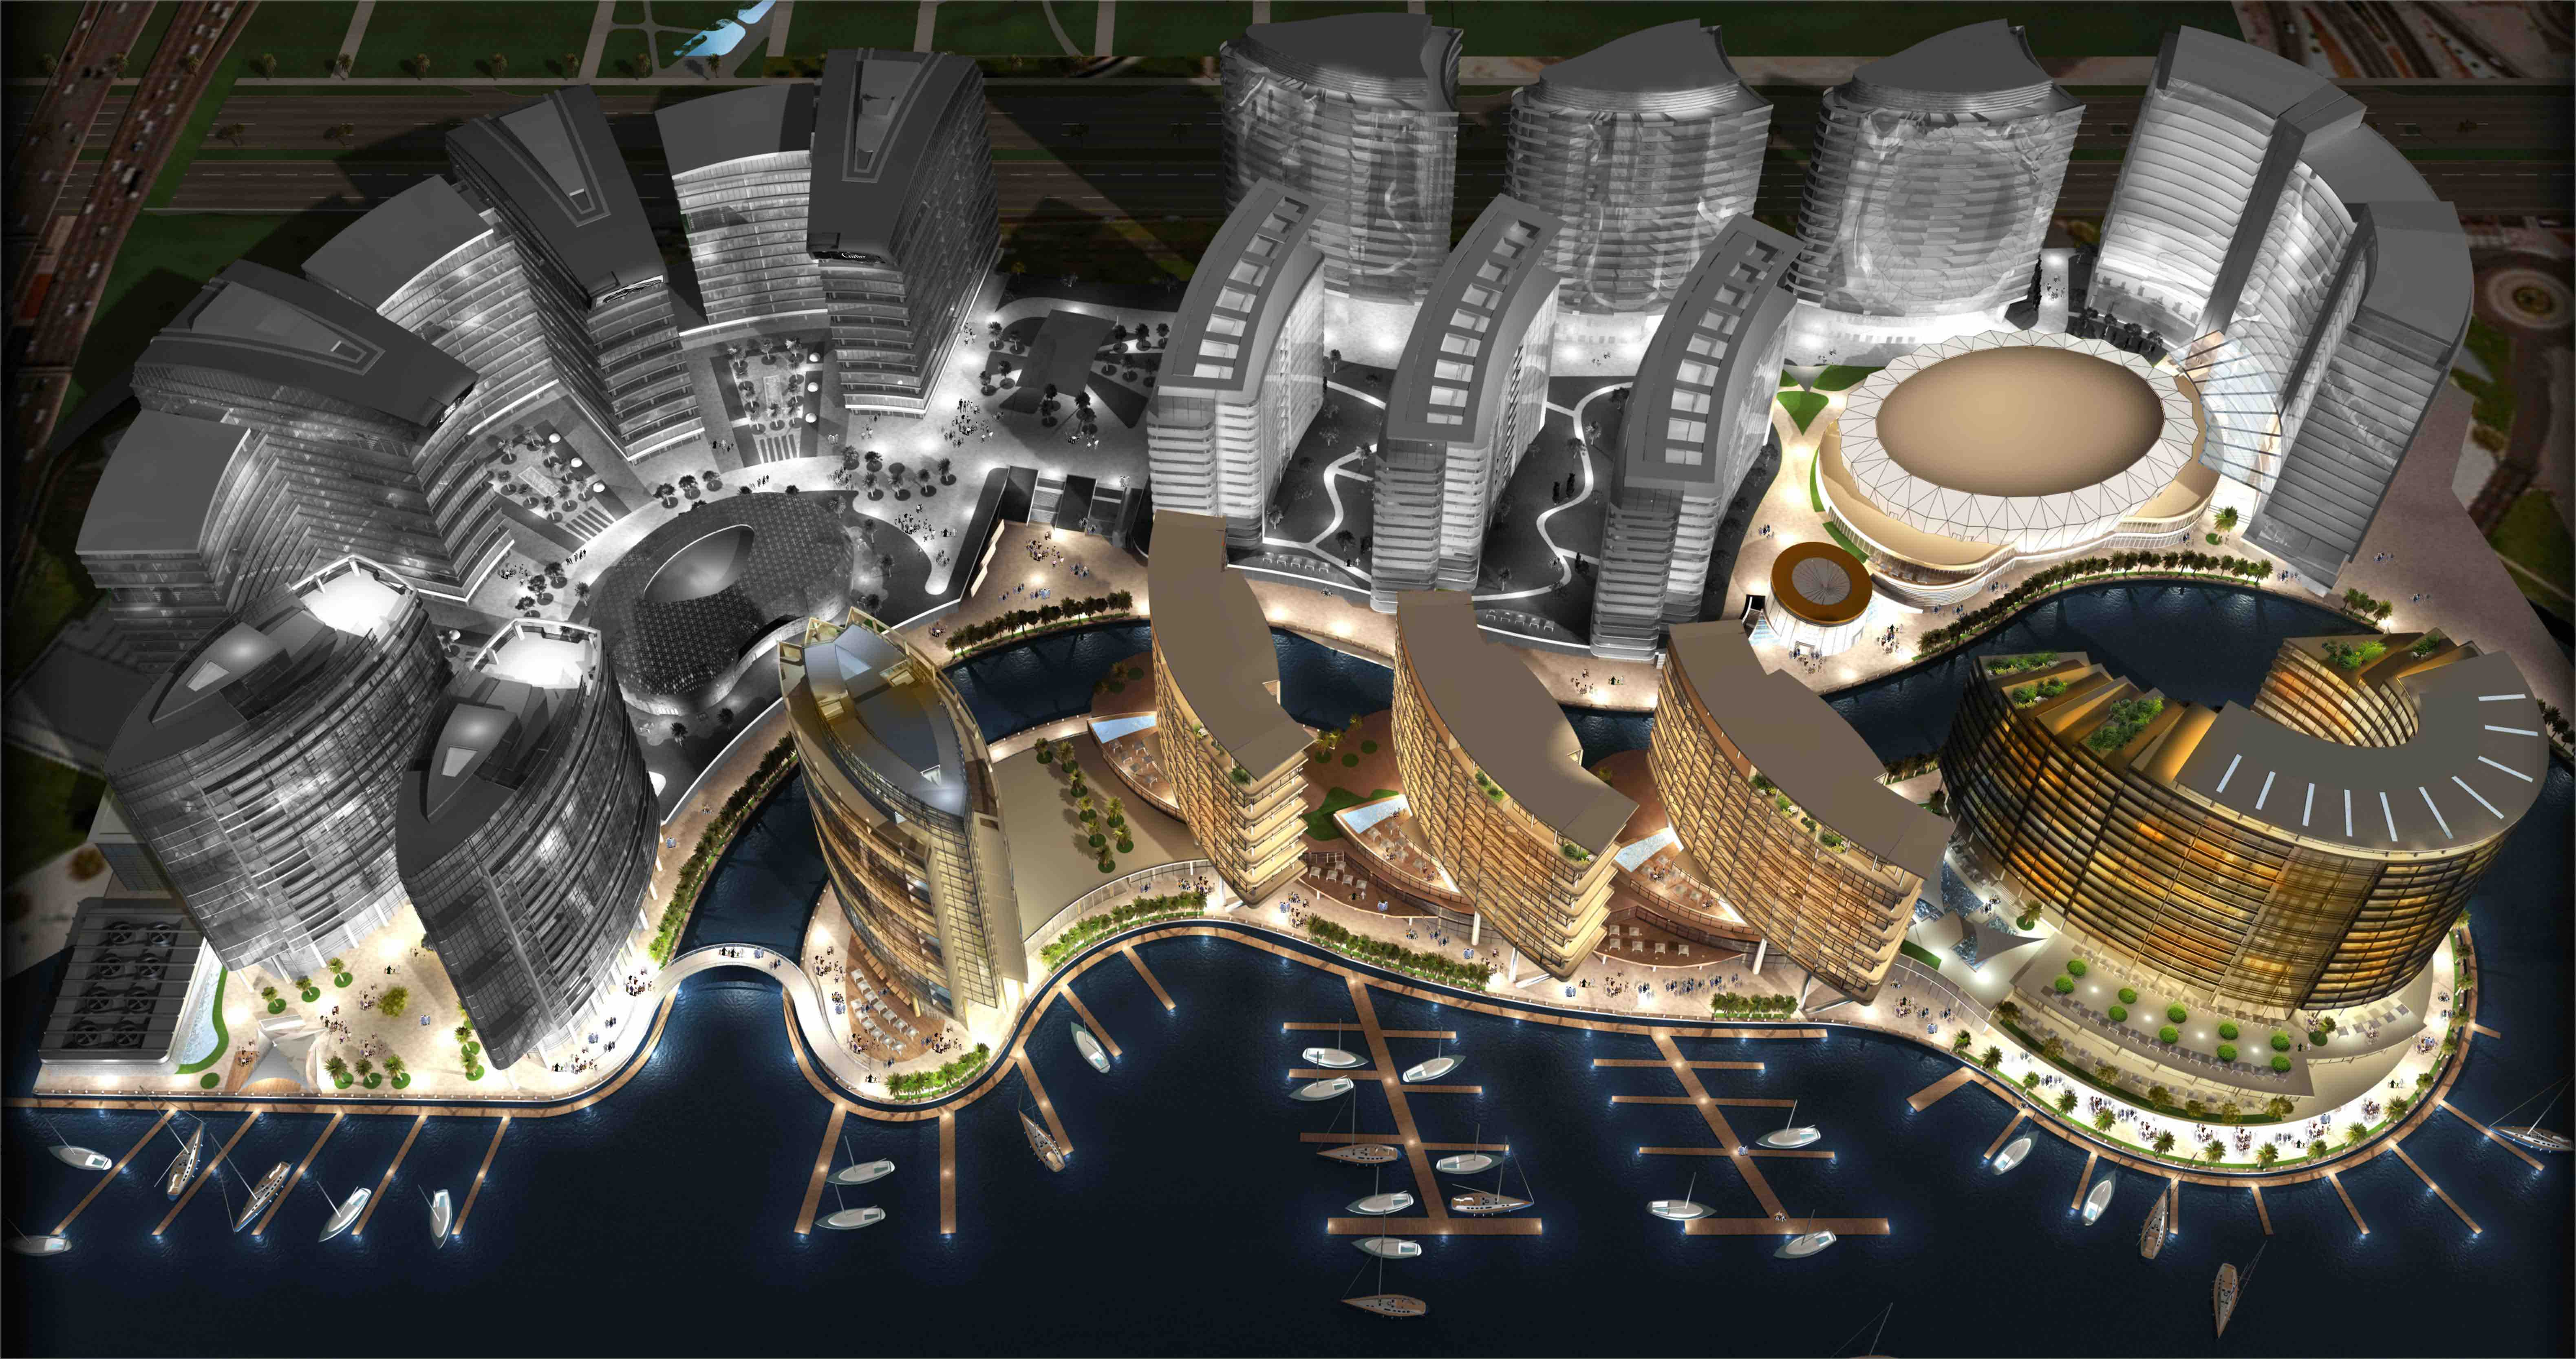 Dubai Creek development to feature 'largest swimming pool in Middle East and Europe'